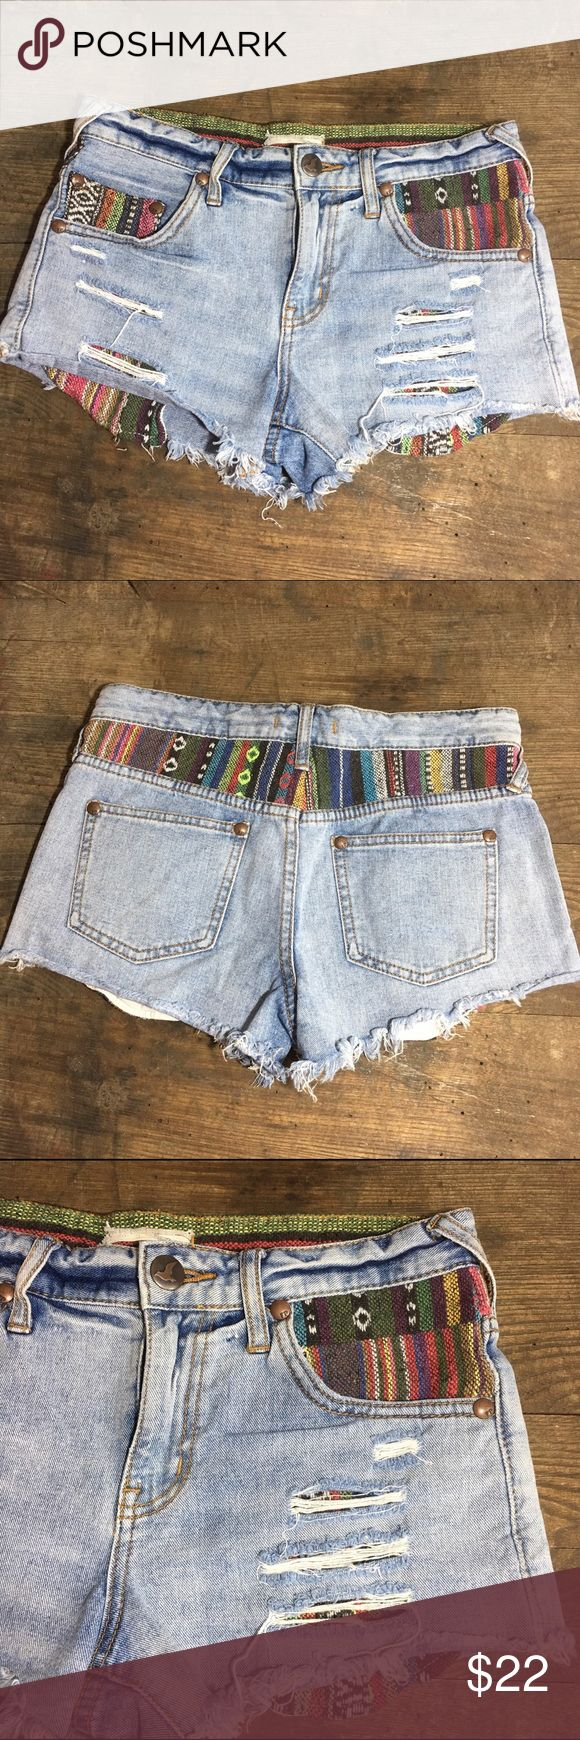 Free People Jean Shorts Free people cut jean shorts with colorful print details and pockets! Super comfortable and adorable. Free People Shorts Jean Shorts